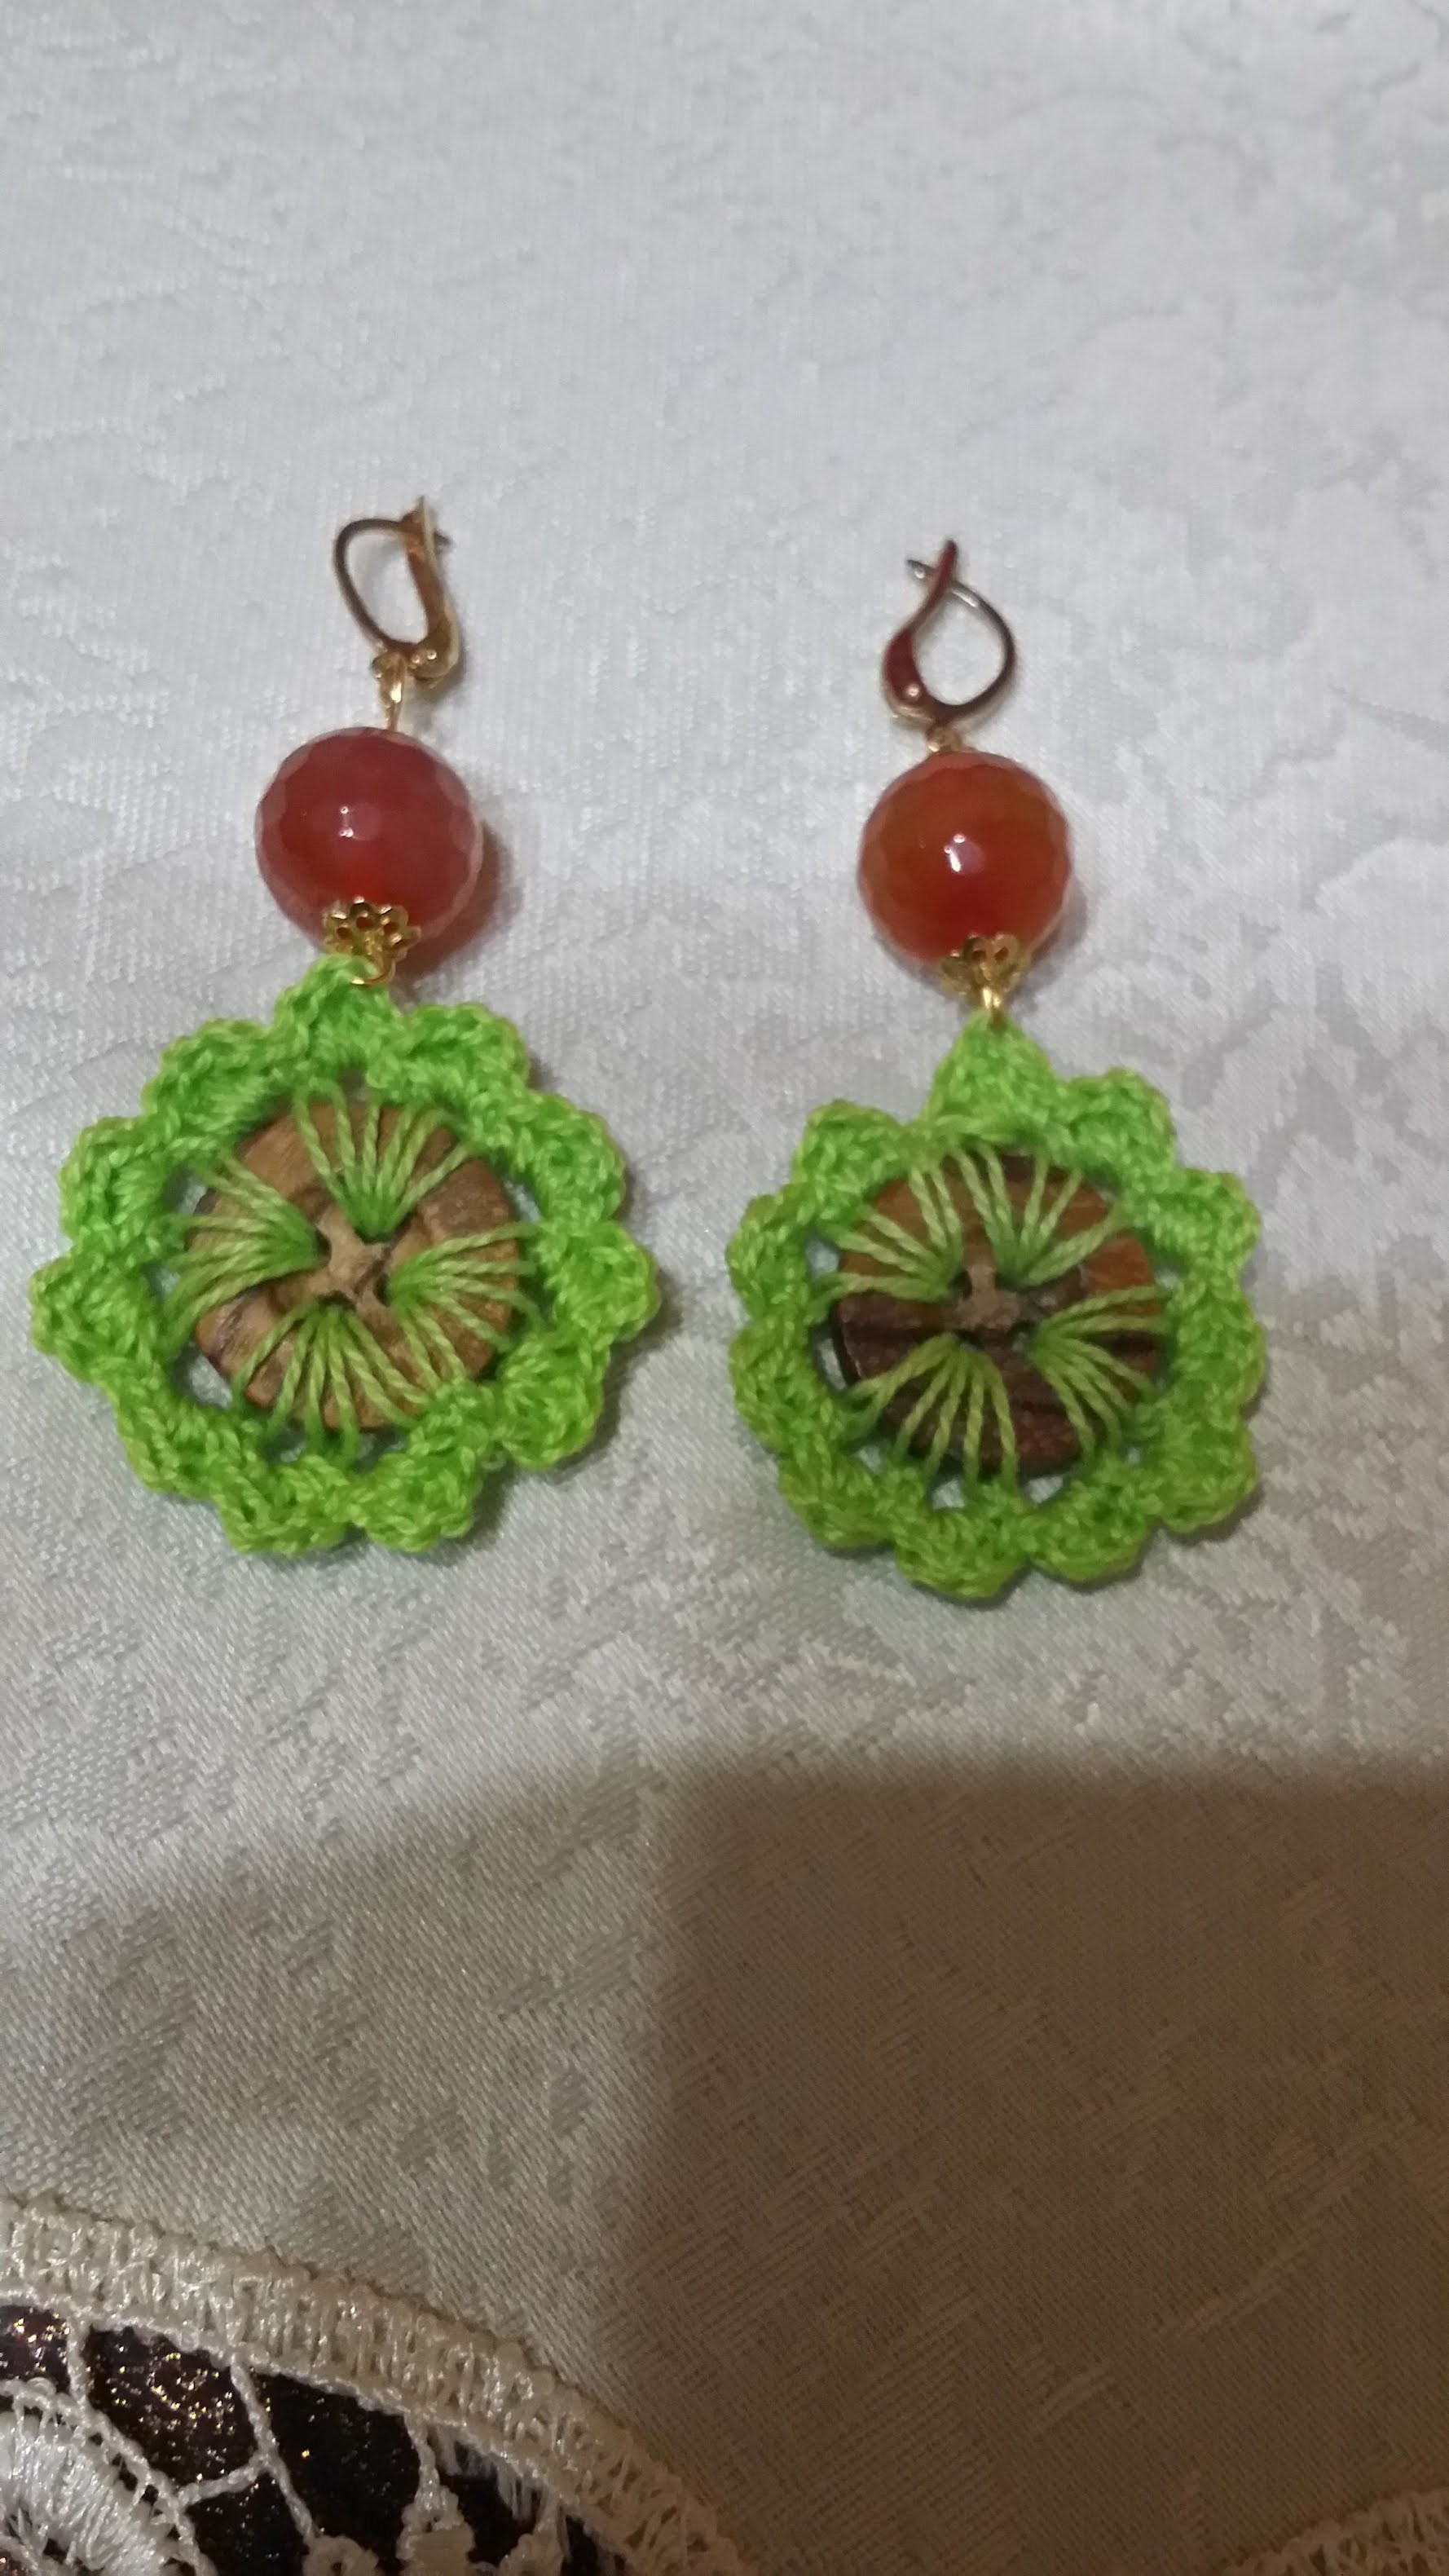 Orecchini Con Bottoni Alluncinettoearrings With Crochet Buttons